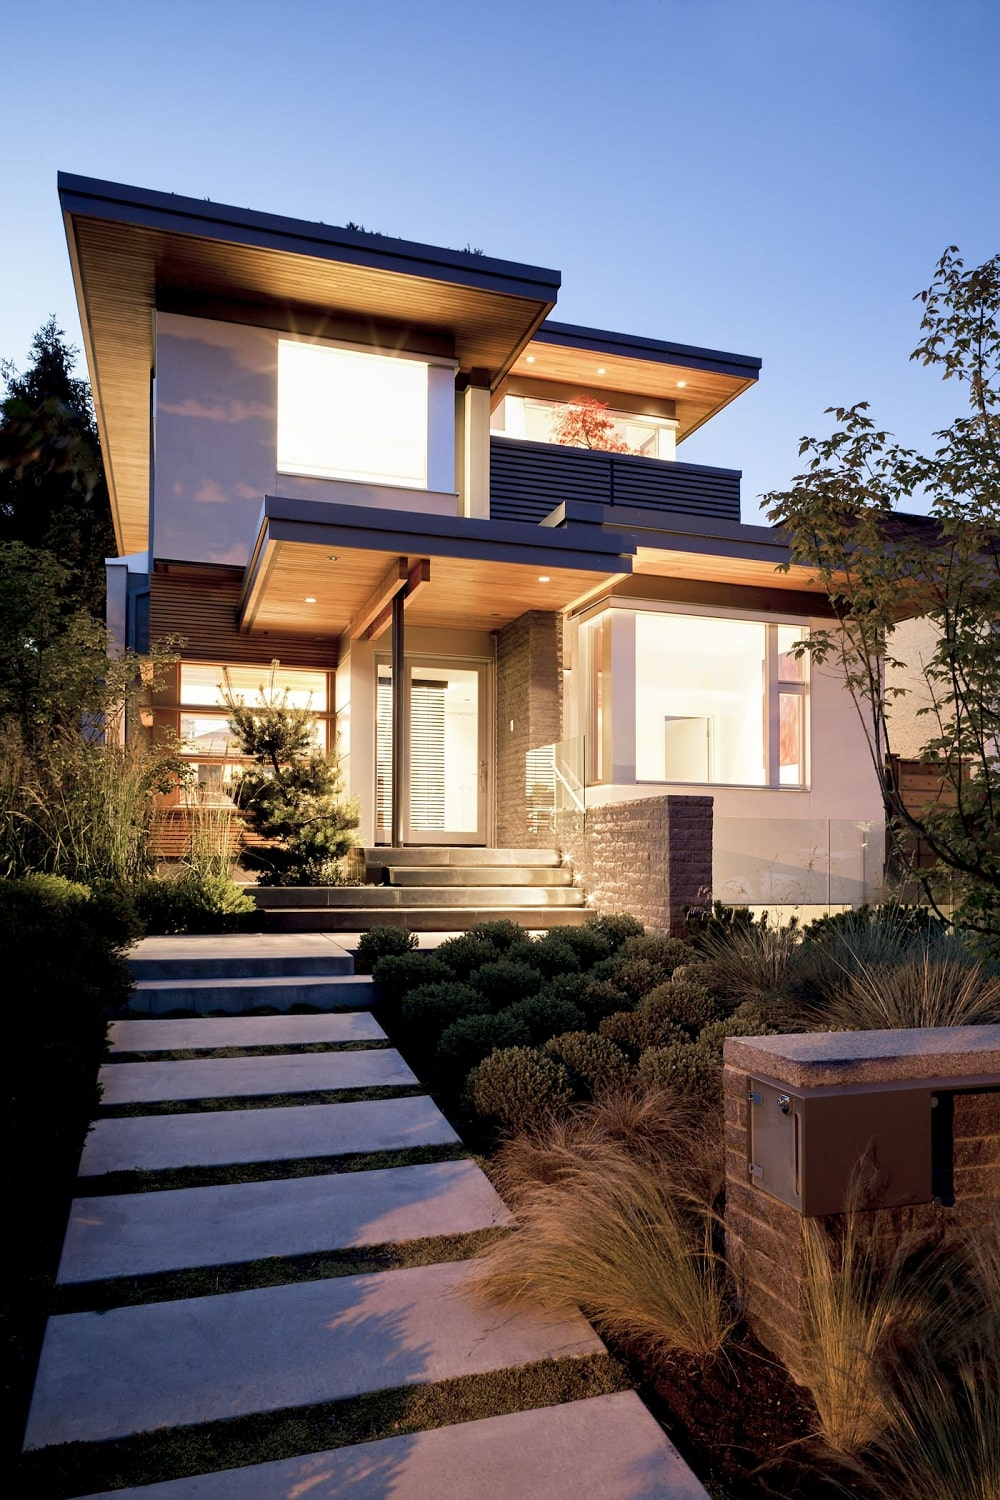 Prefabricated house1 The advantages and disadvantages of buying prefabricated houses